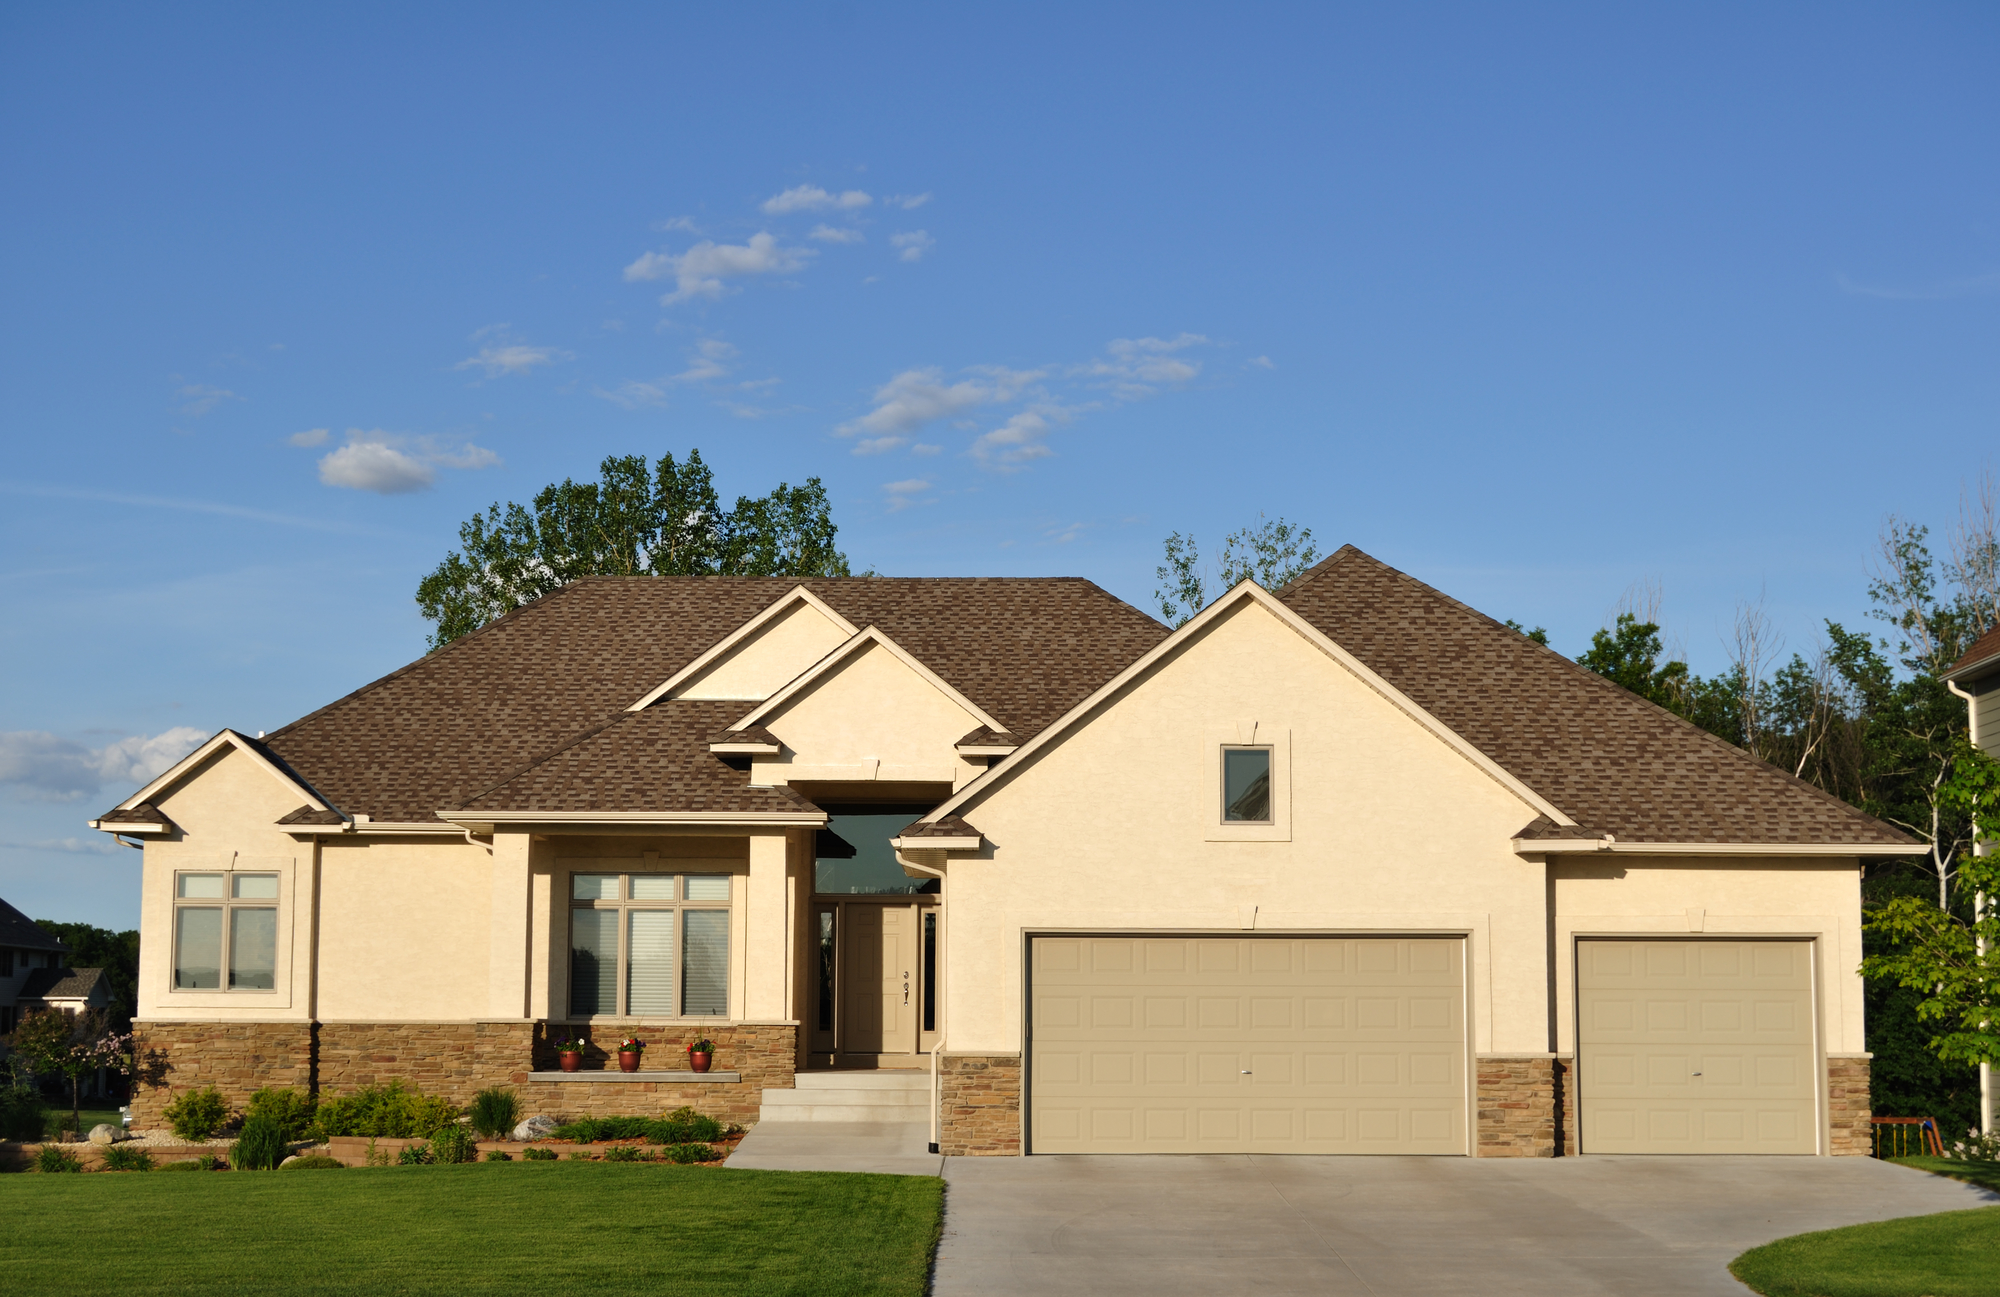 Robbins Roofing Oklahoma City - residential roofing